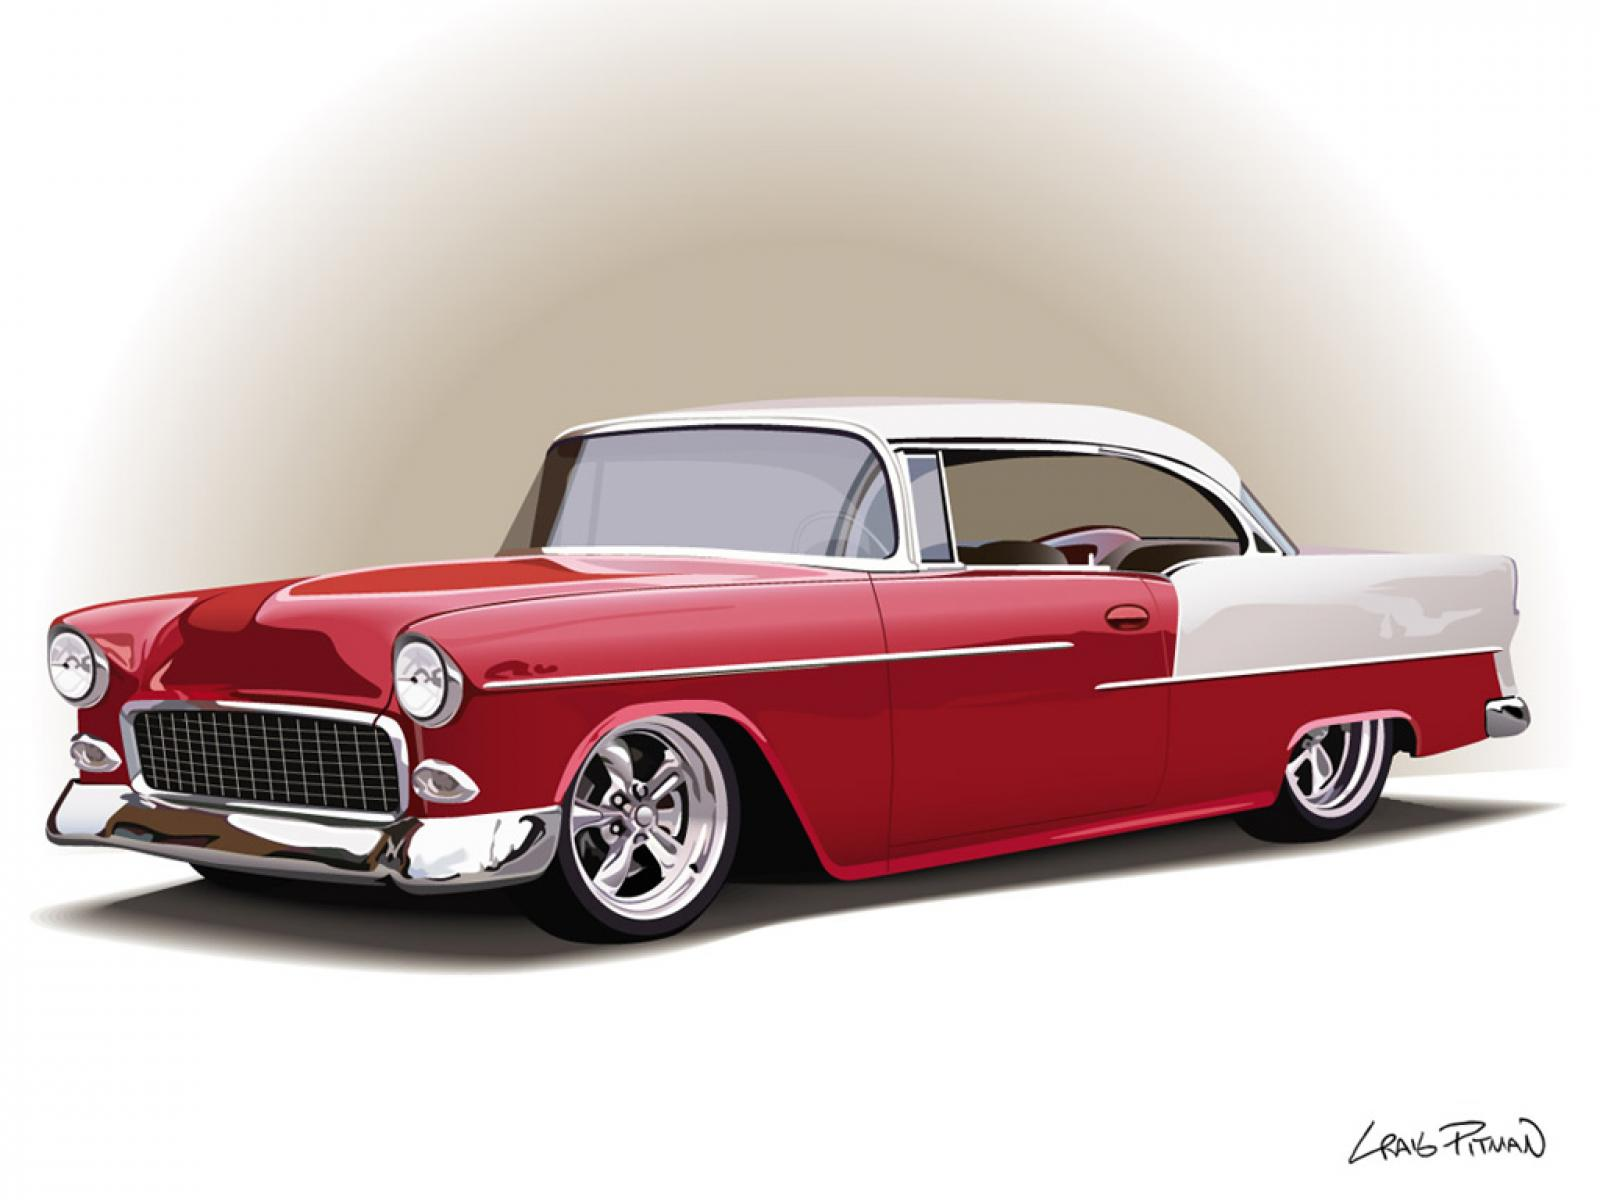 55 Chevy Old Classic Antique Car